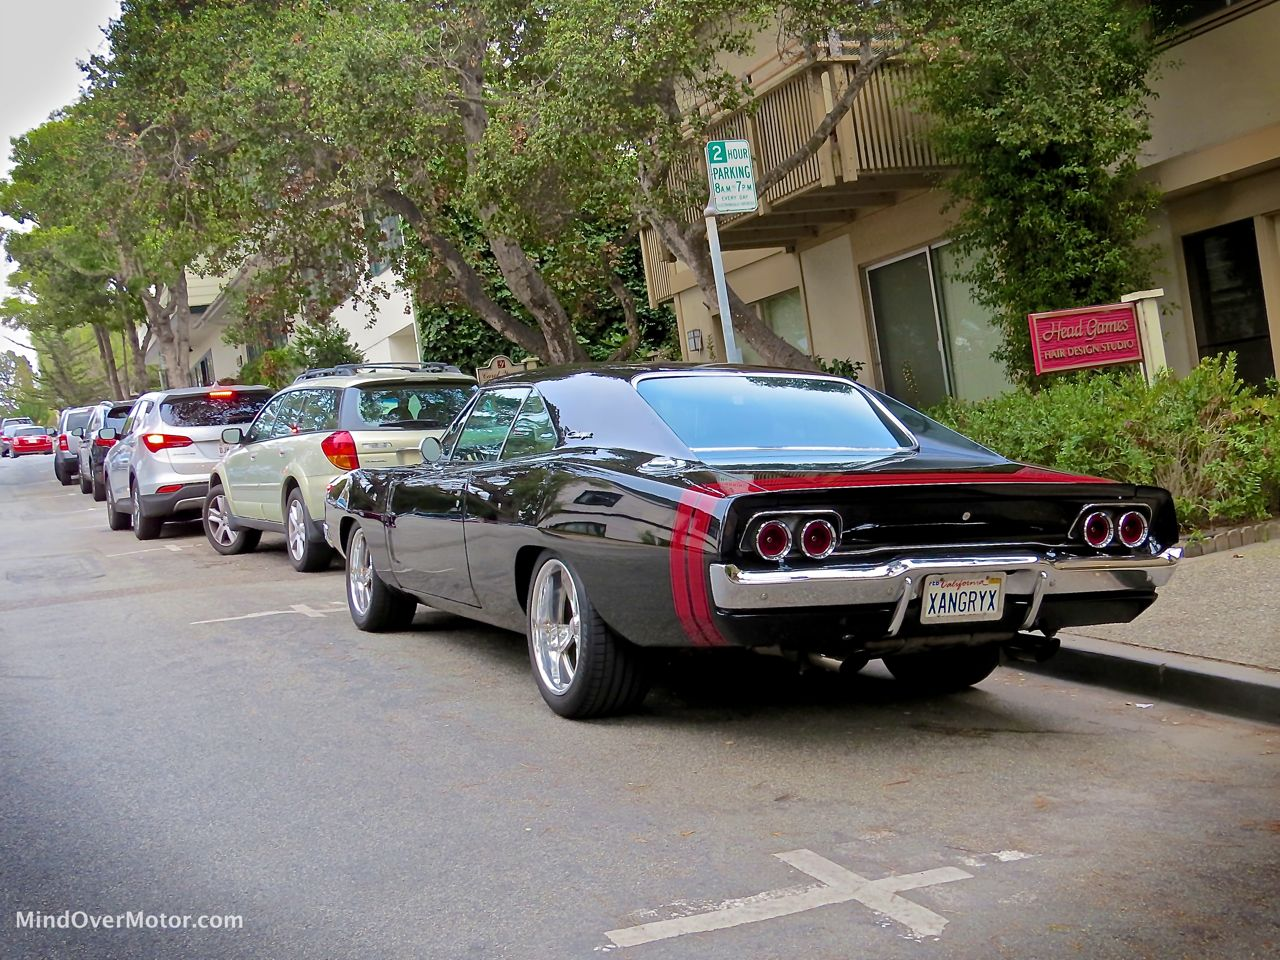 Mike Musto's Charger